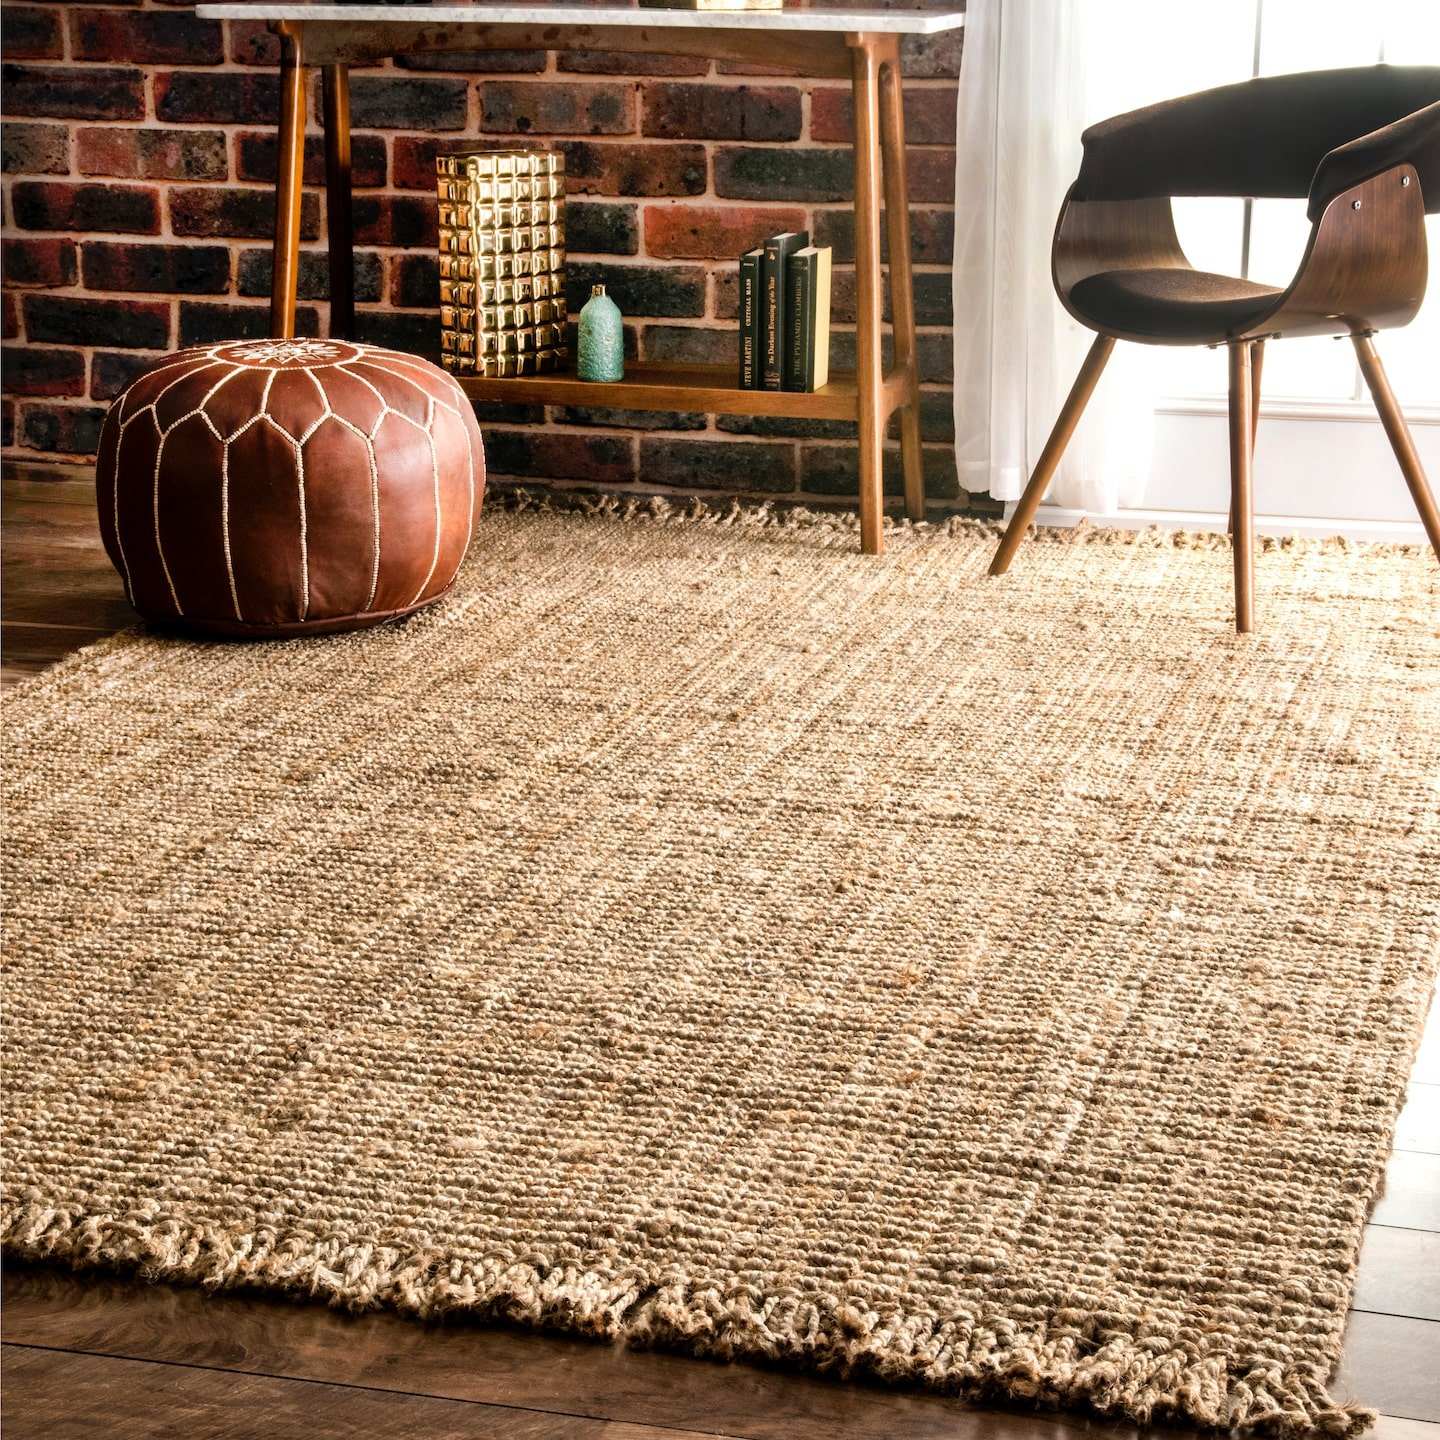 nuLOOM NCCL01 Natura Collection Chunky Loop Jute Casuals Natural Fibers Hand Woven Area Rug, 7' 6'' x 9' 6'' , Beige